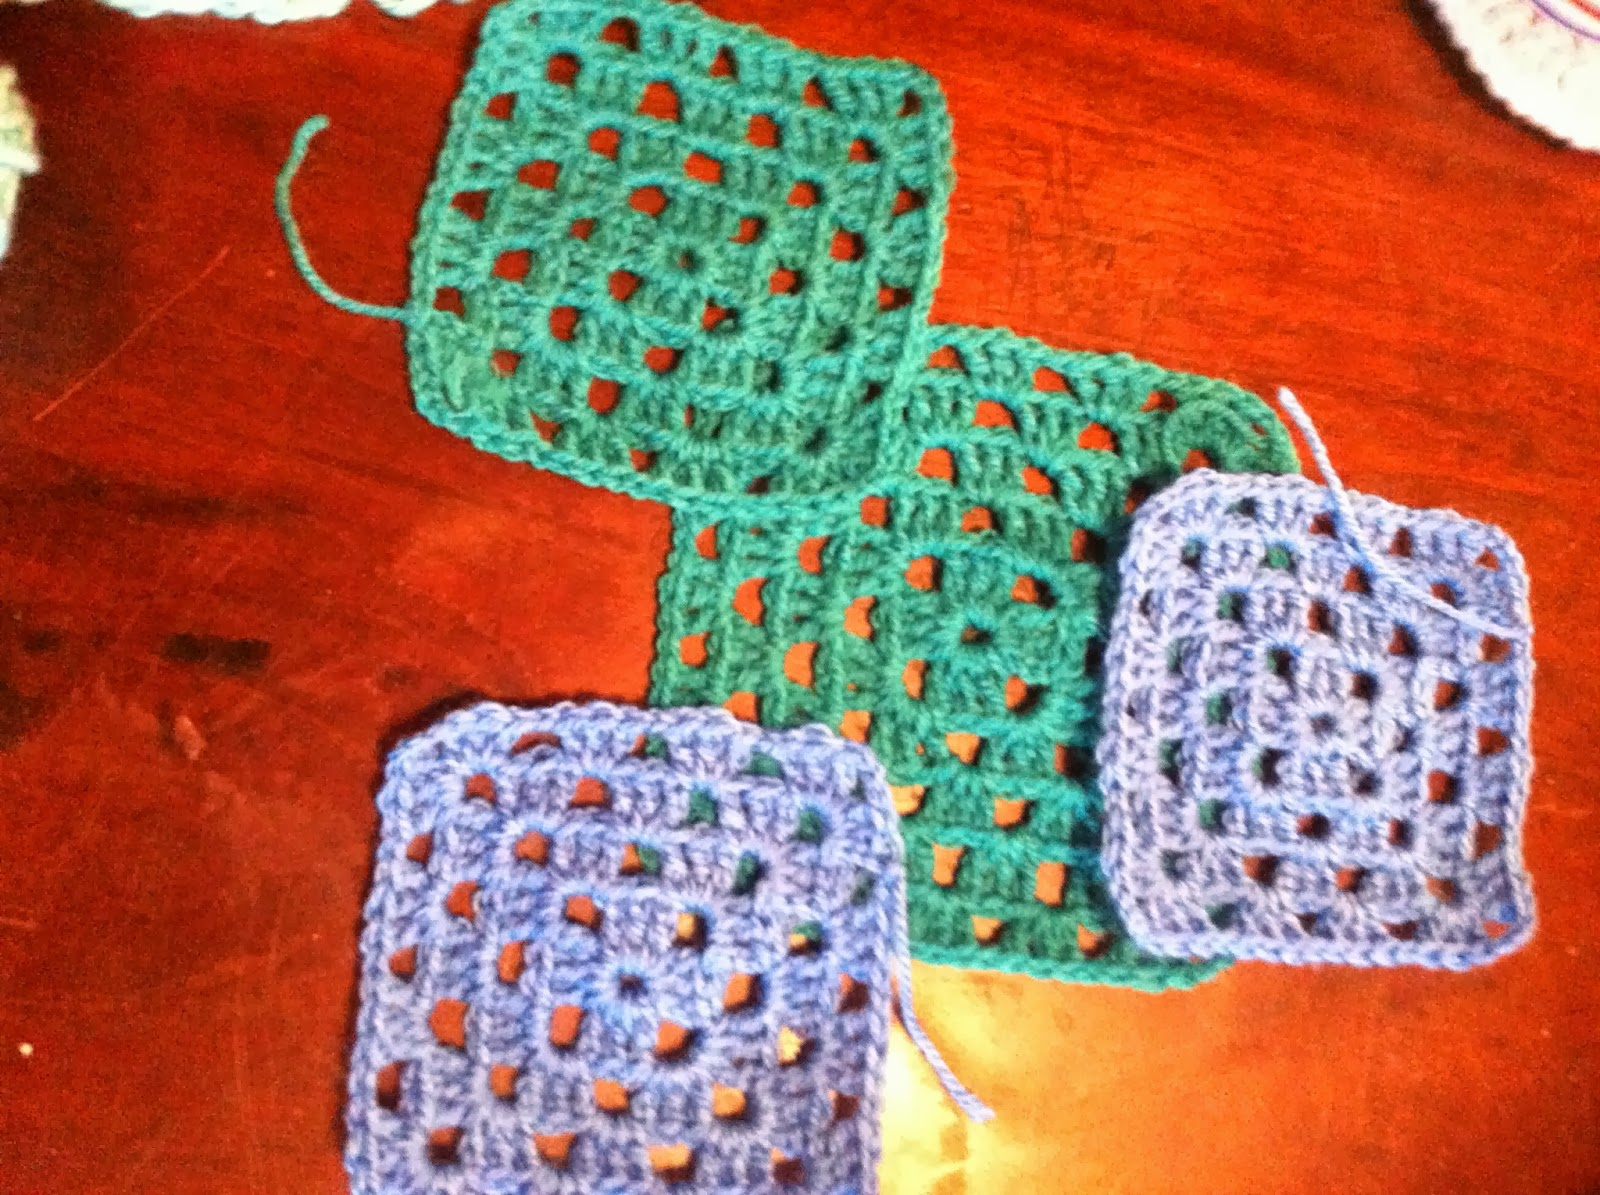 Get Hooked on Crochet: Day 269 - More Crochet Class action!!